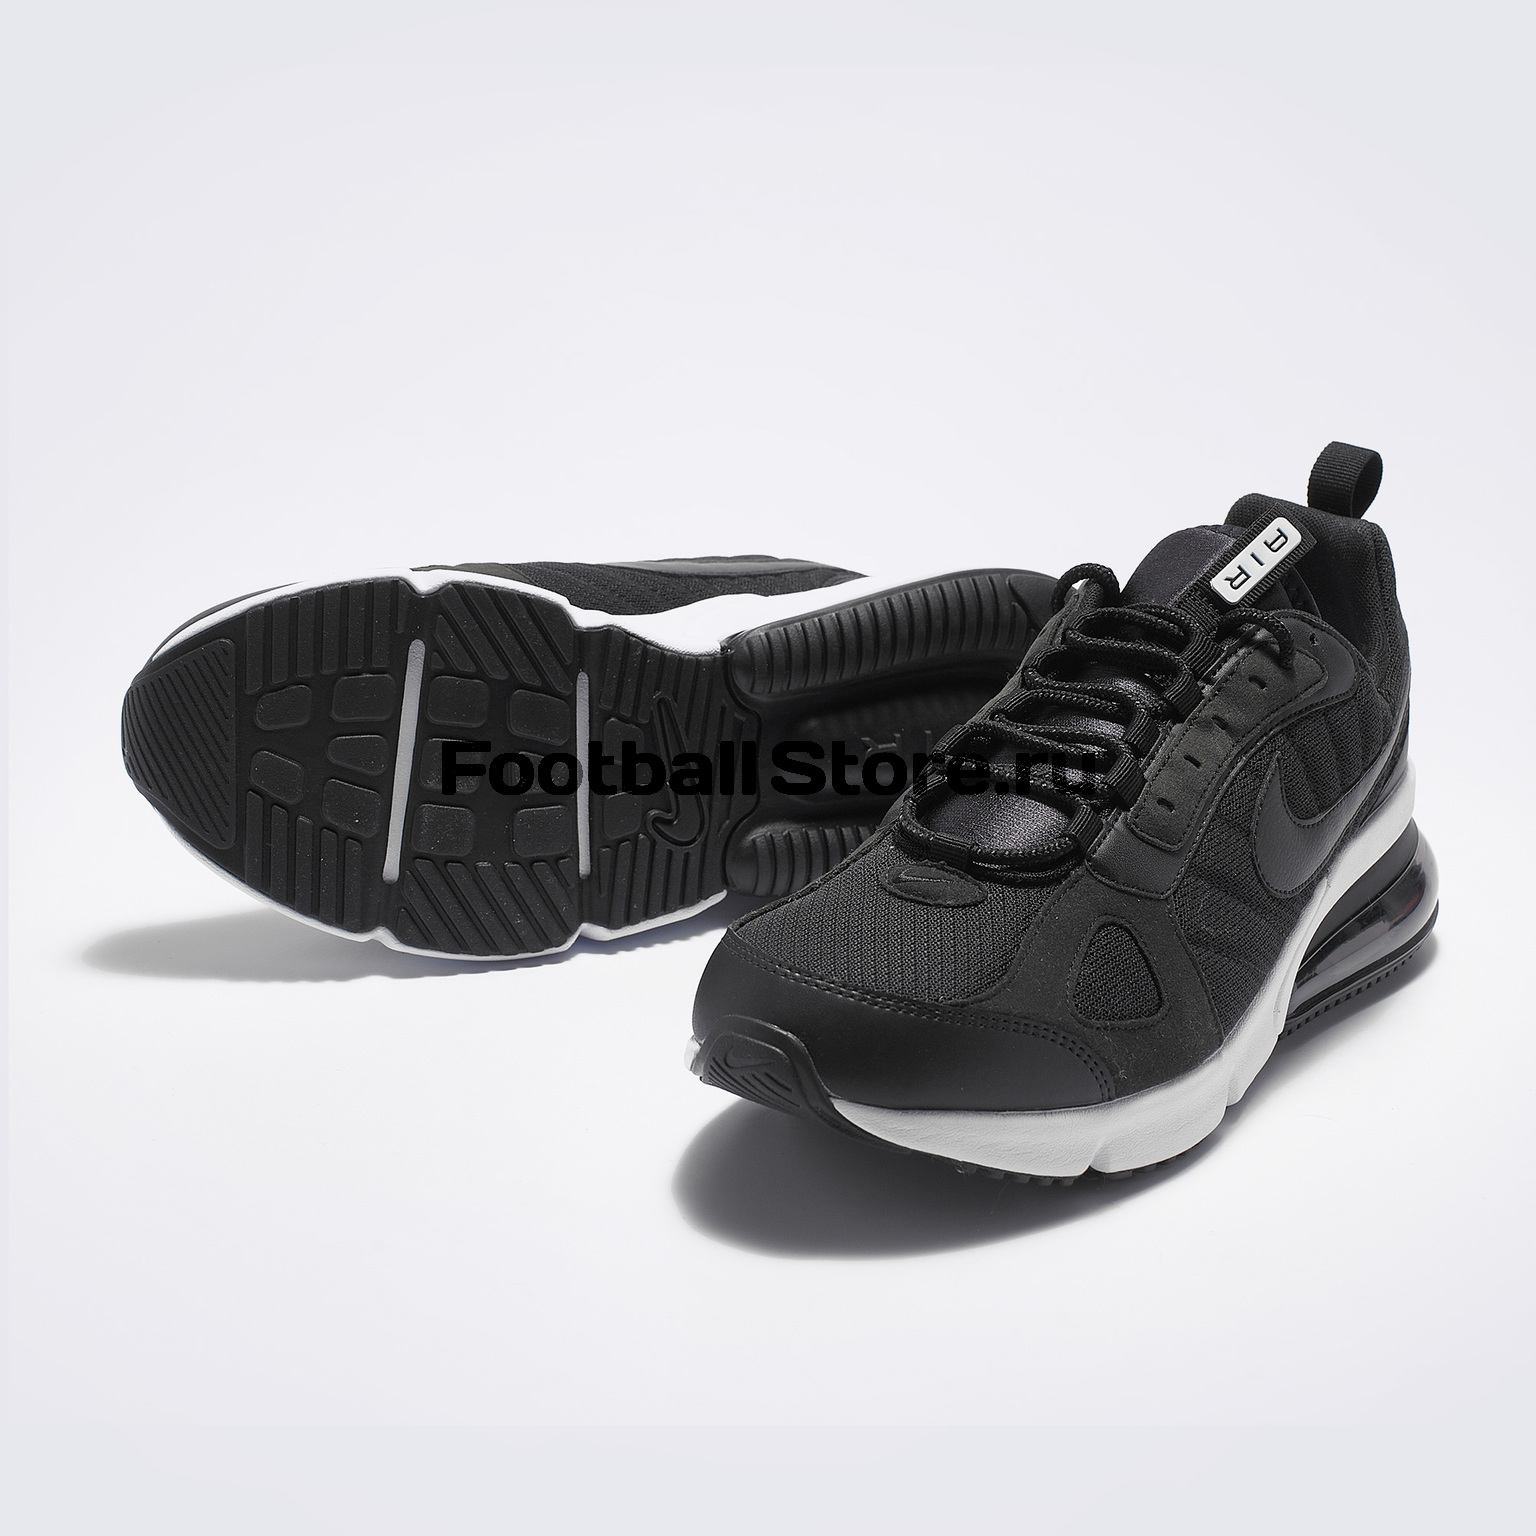 Кроссовки Nike Air Max 270 Futura AO1569-001 кроссовки nike air zoom structure 21 shield 907324 001